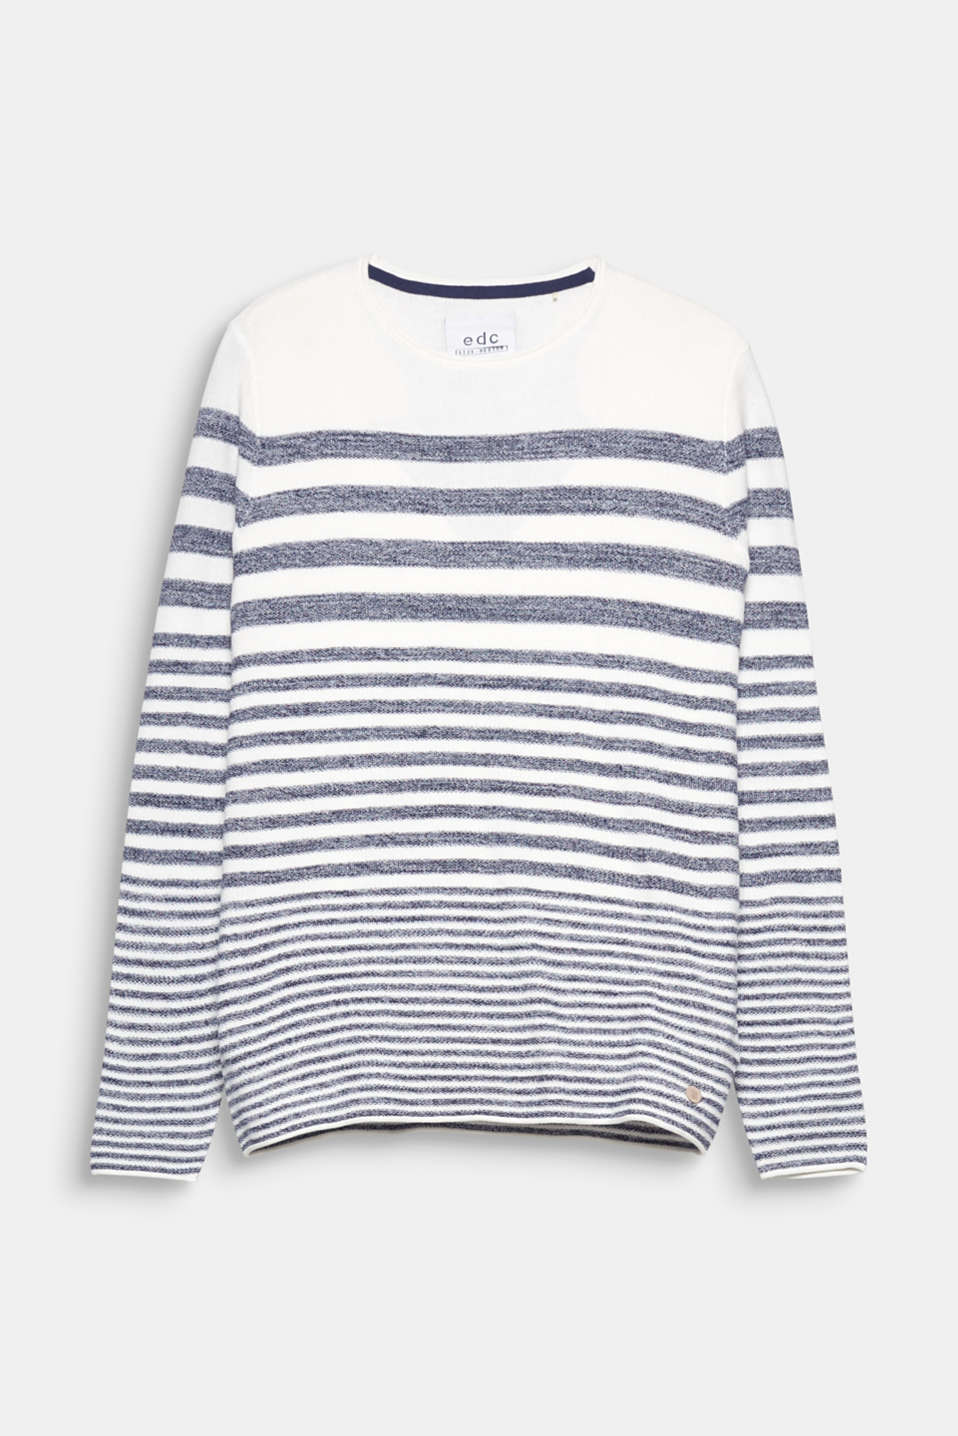 Timeless and sporty! Nautical stripes and jersey with a grainy texture make this jumper a true summery style.